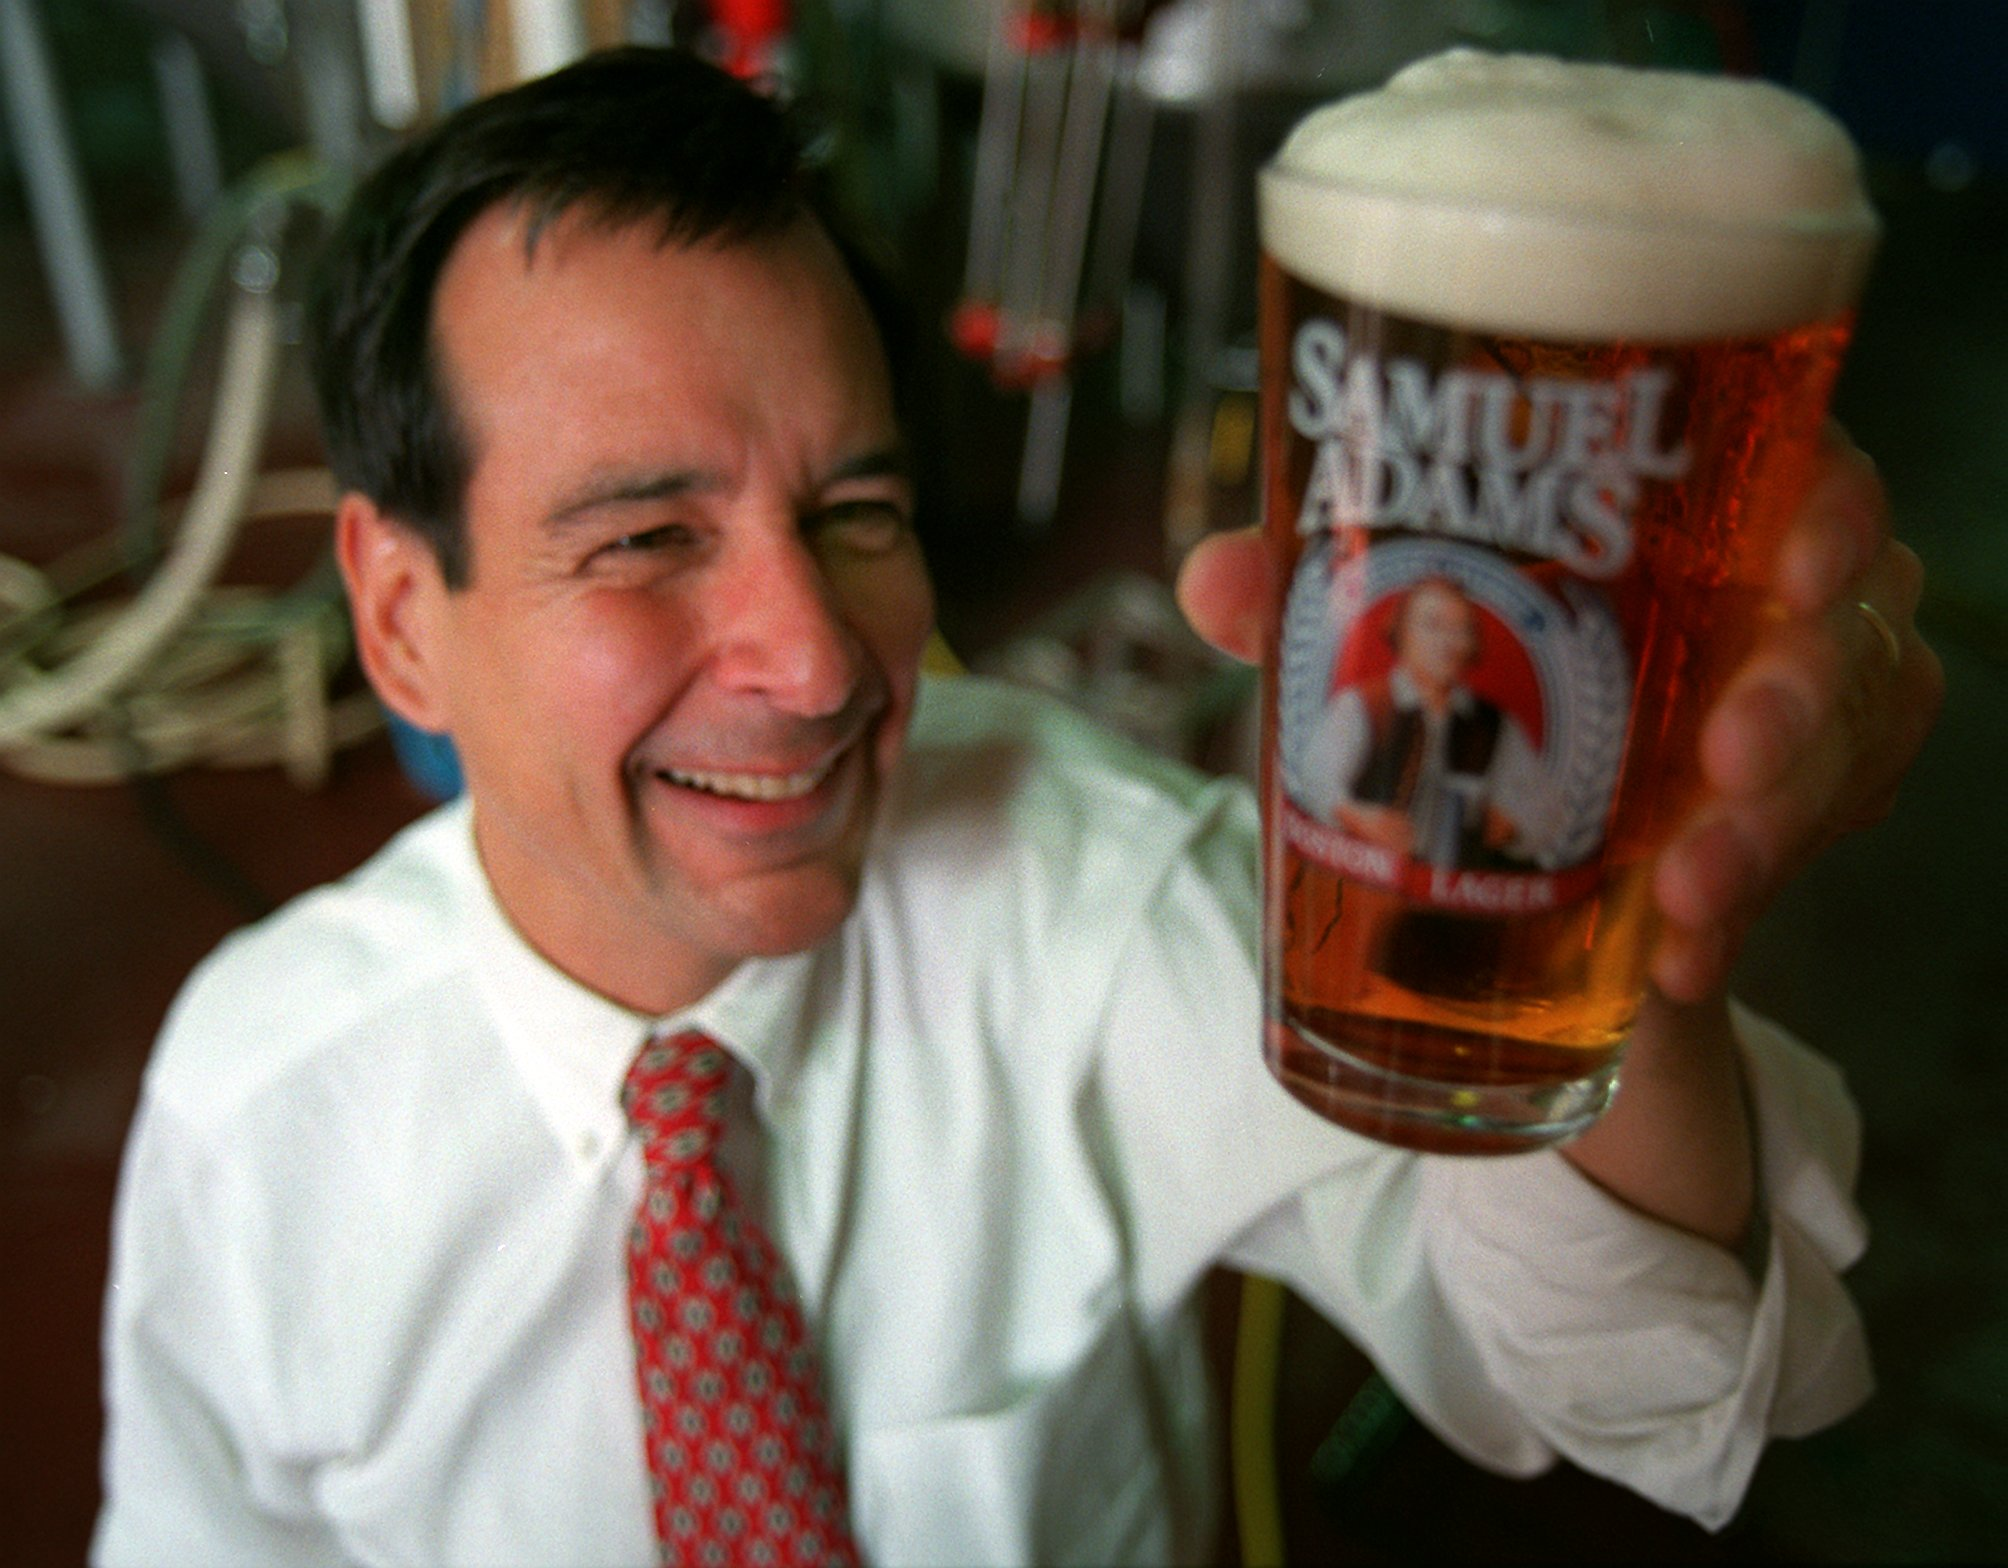 Jim Koch, Chairman Of Boston Beer Co.